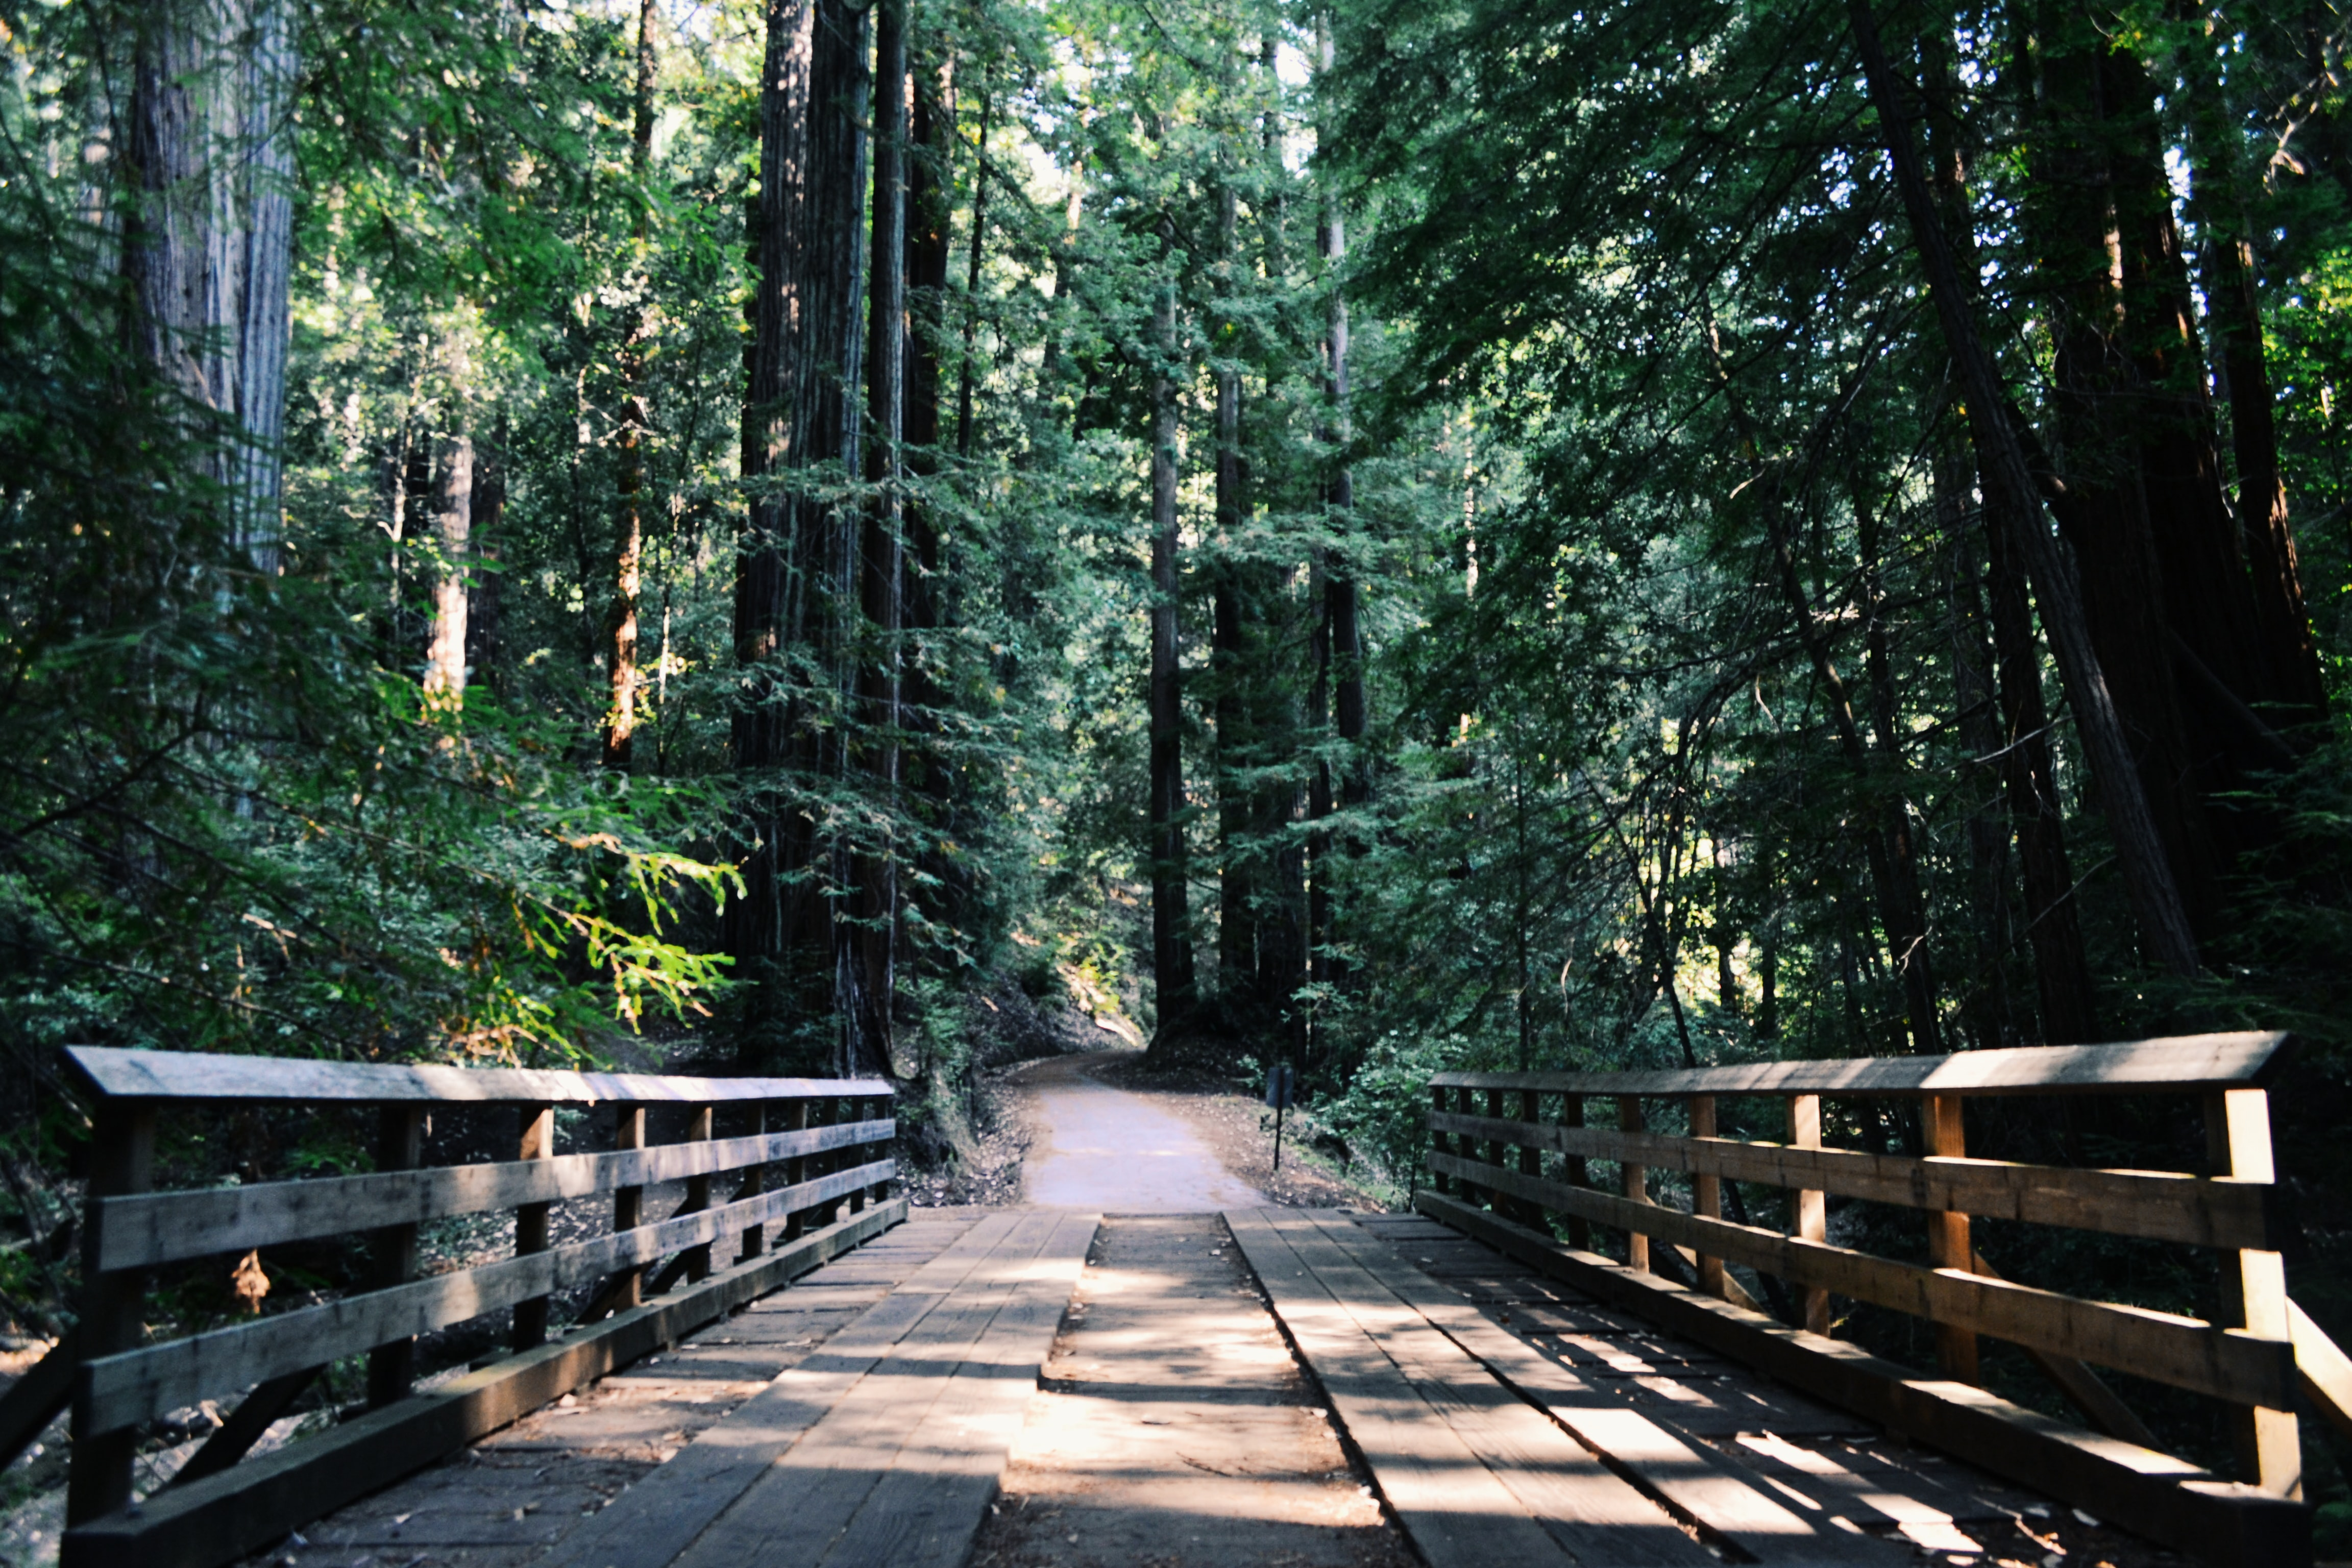 A wooden bridge and a narrow asphalt path in a forest